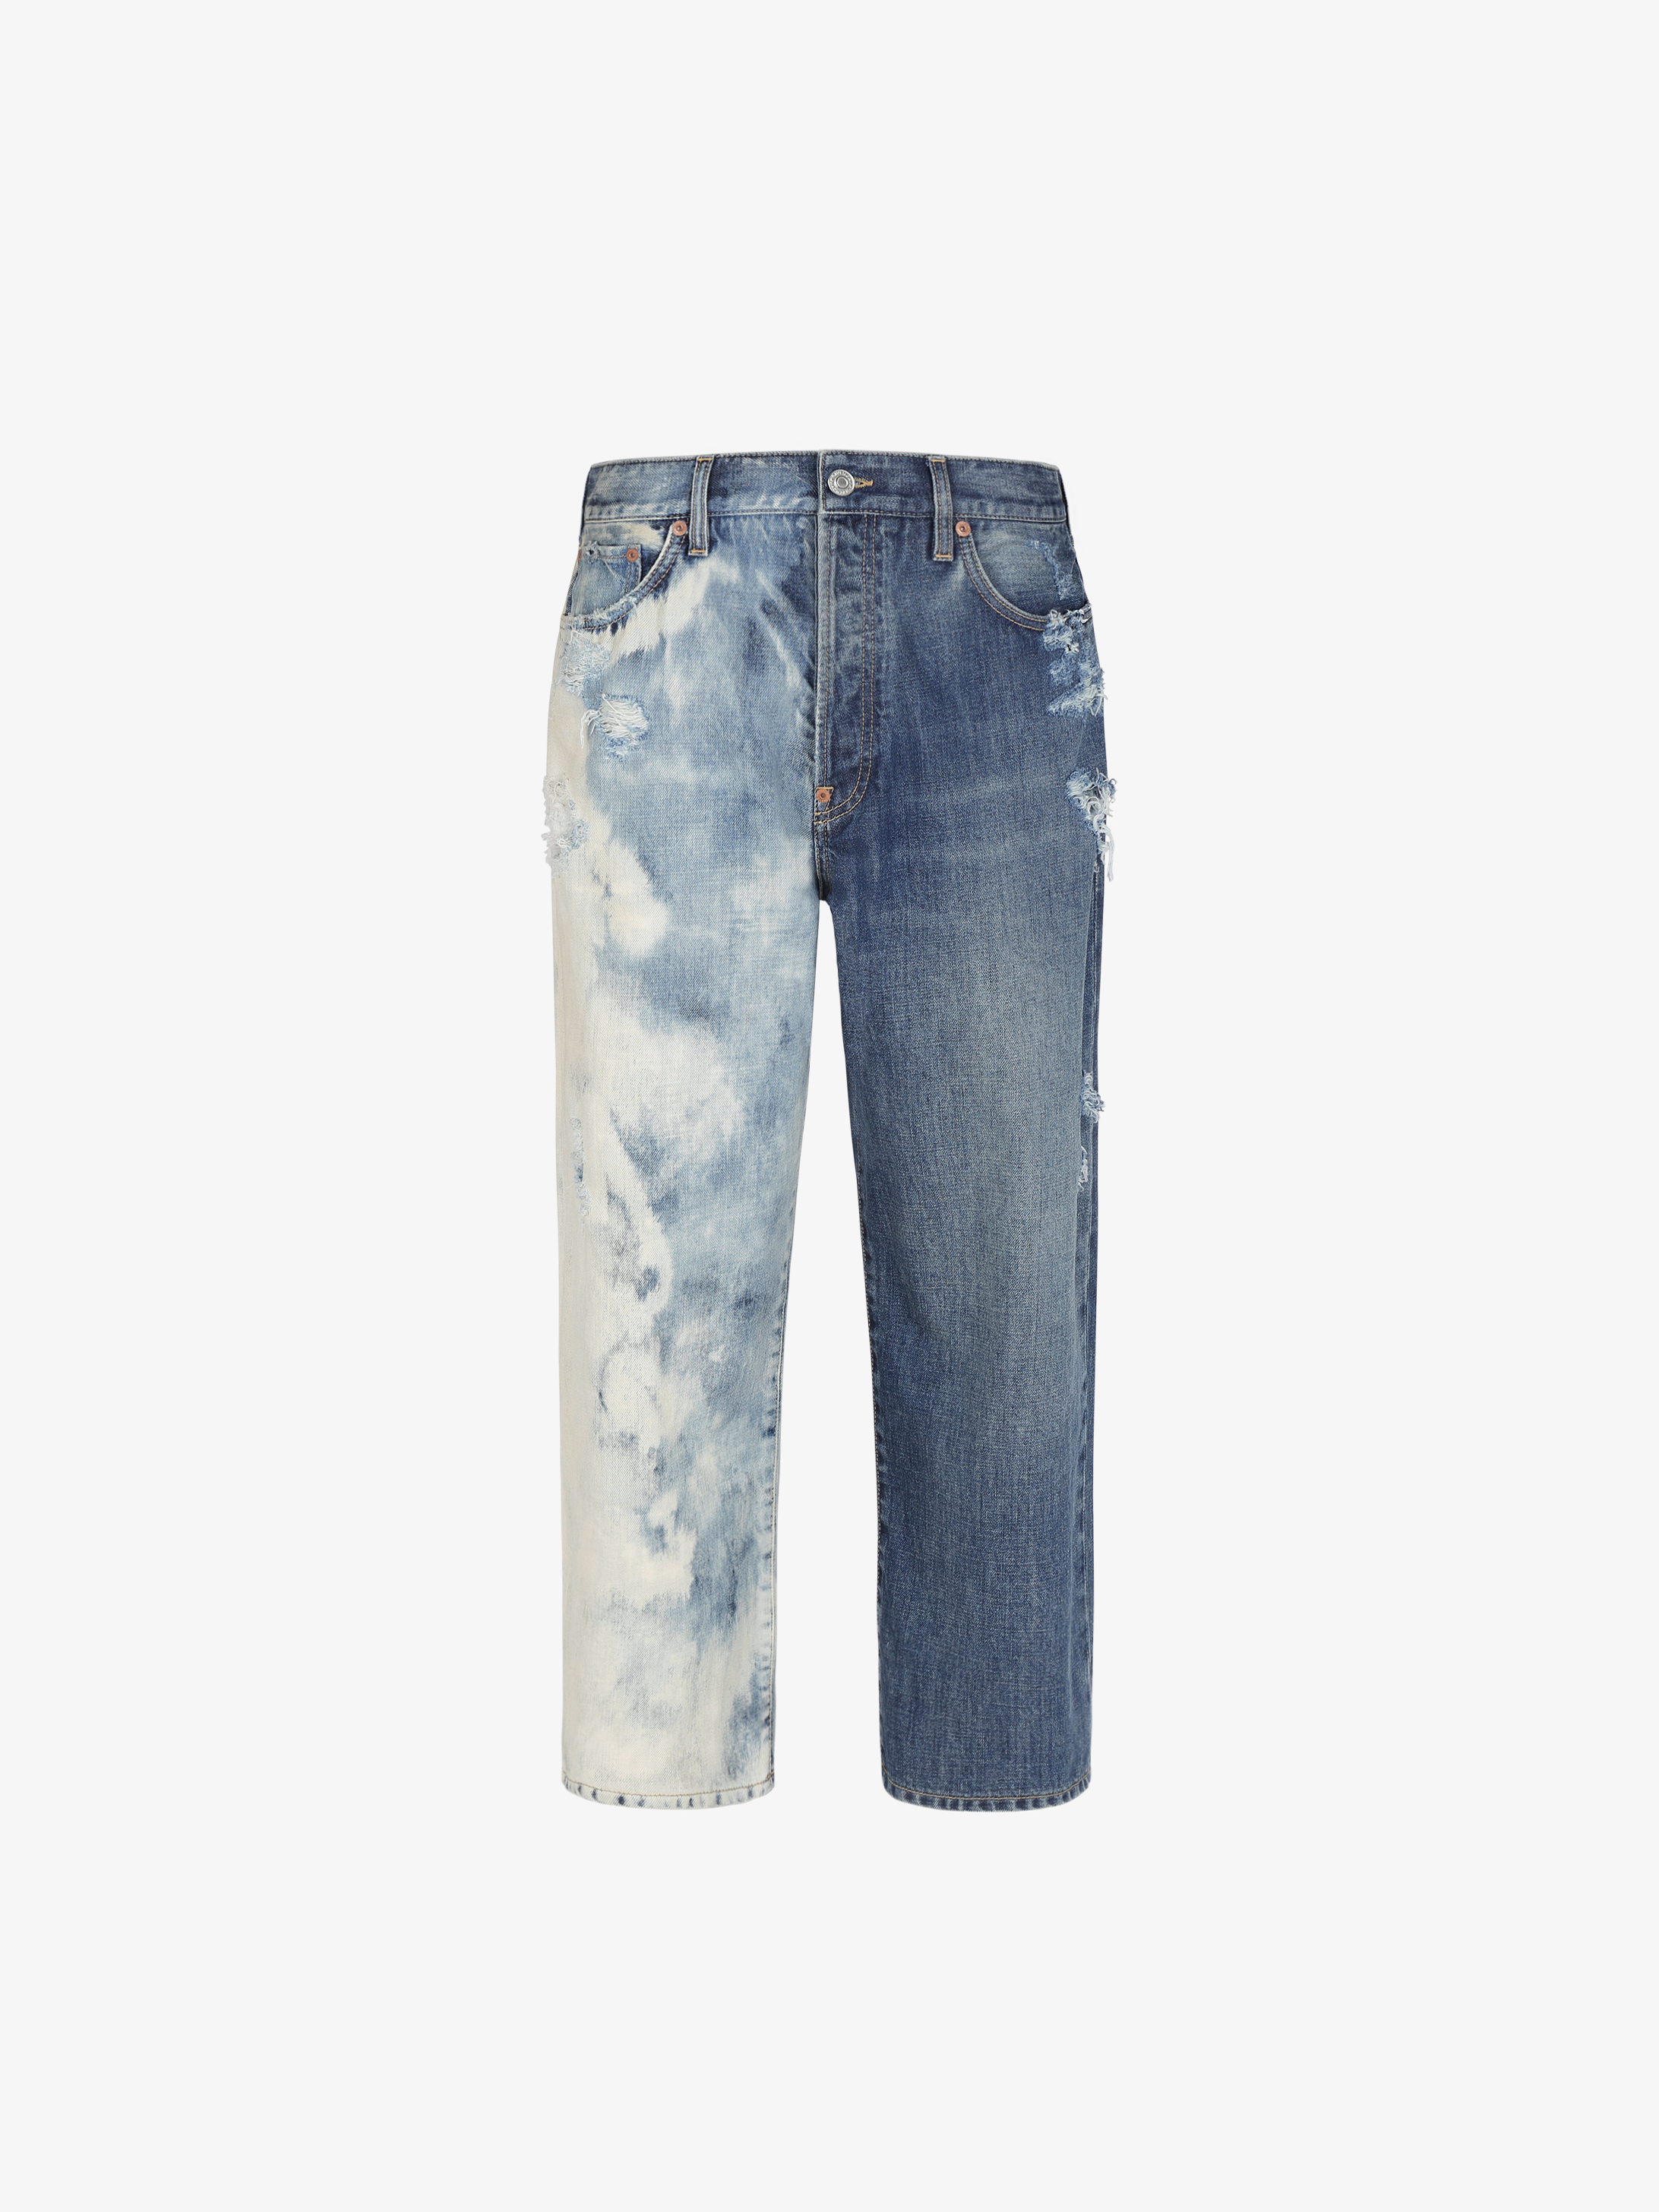 Short boyfriend jean in two tone denim